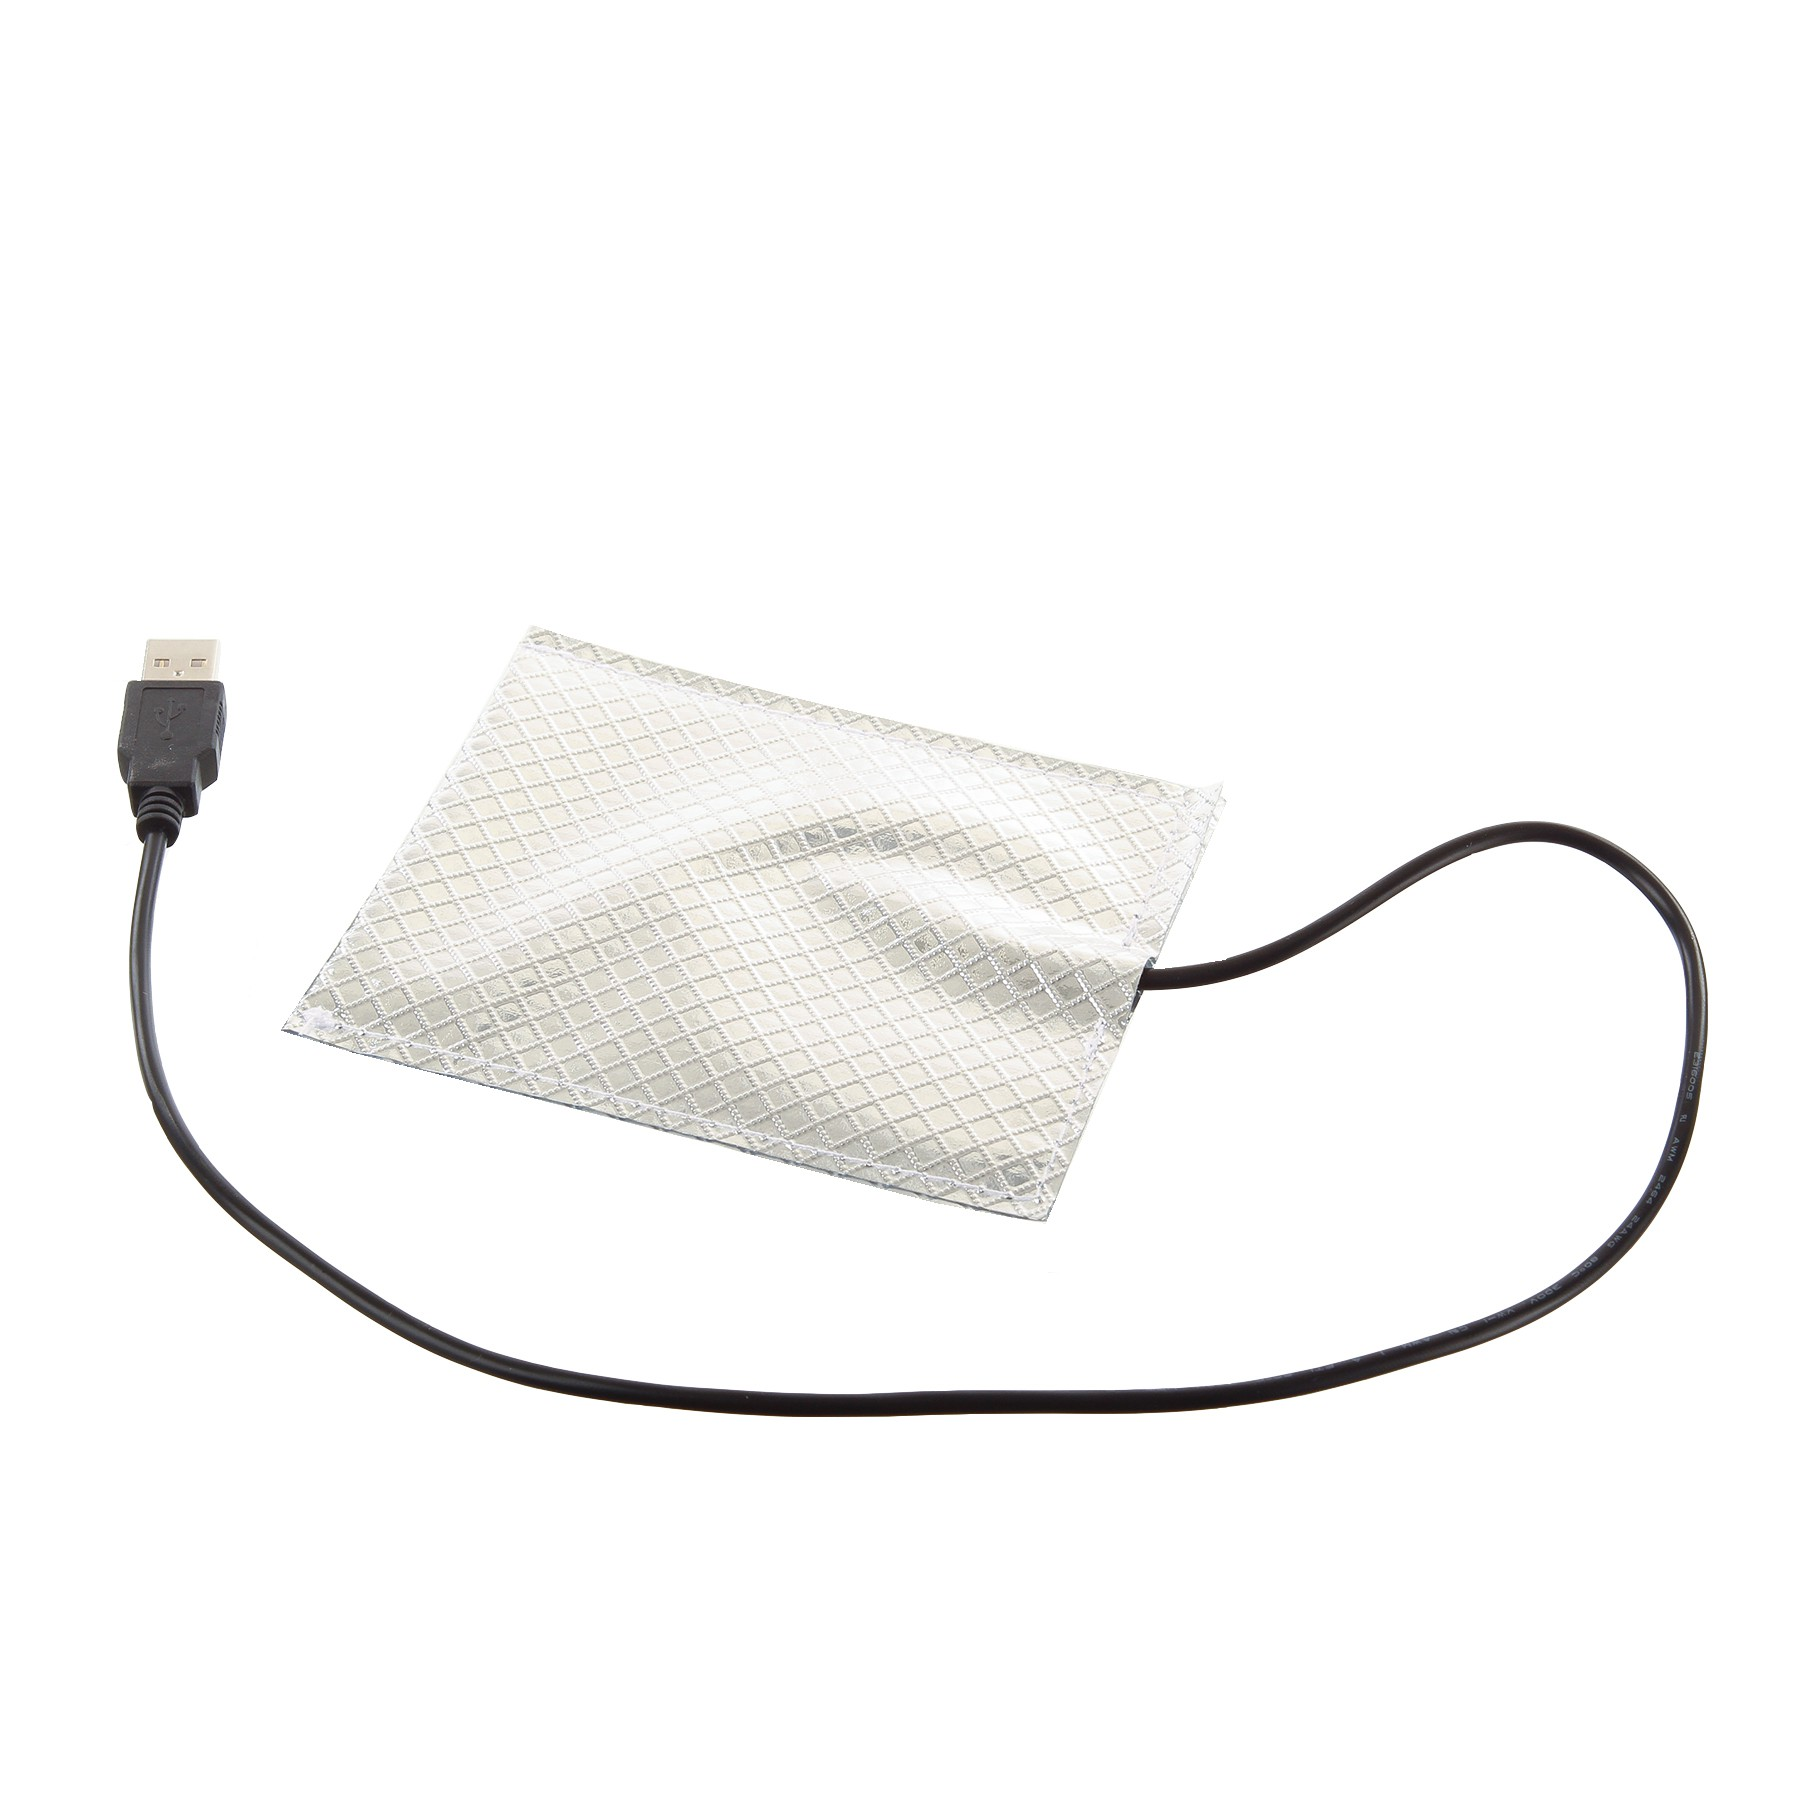 USB Thermotasche Bild https://cdn03.plentymarkets.com/zsy4vjx32p87/item/images/5047/full/13073-ama-07.JPG